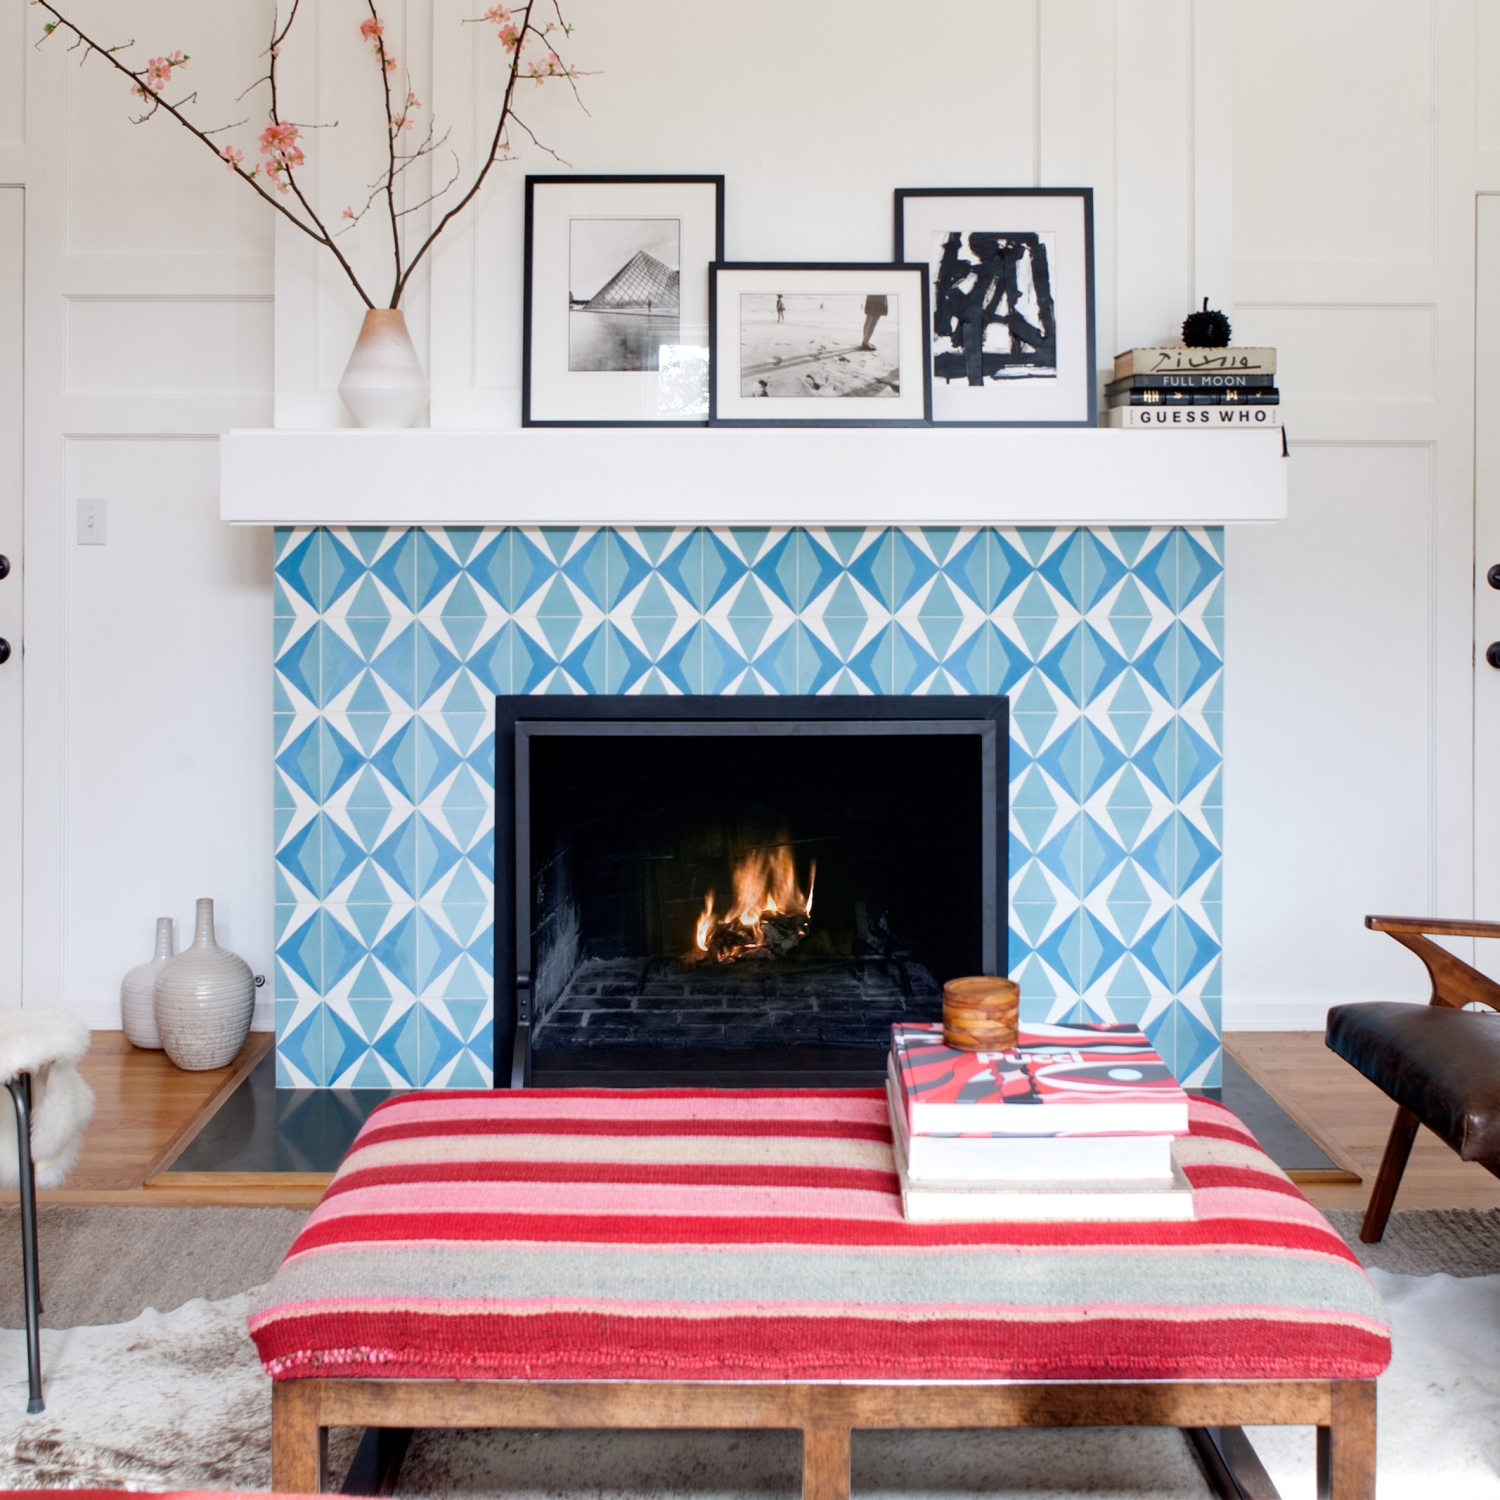 A blue and white tile fireplace in a living room